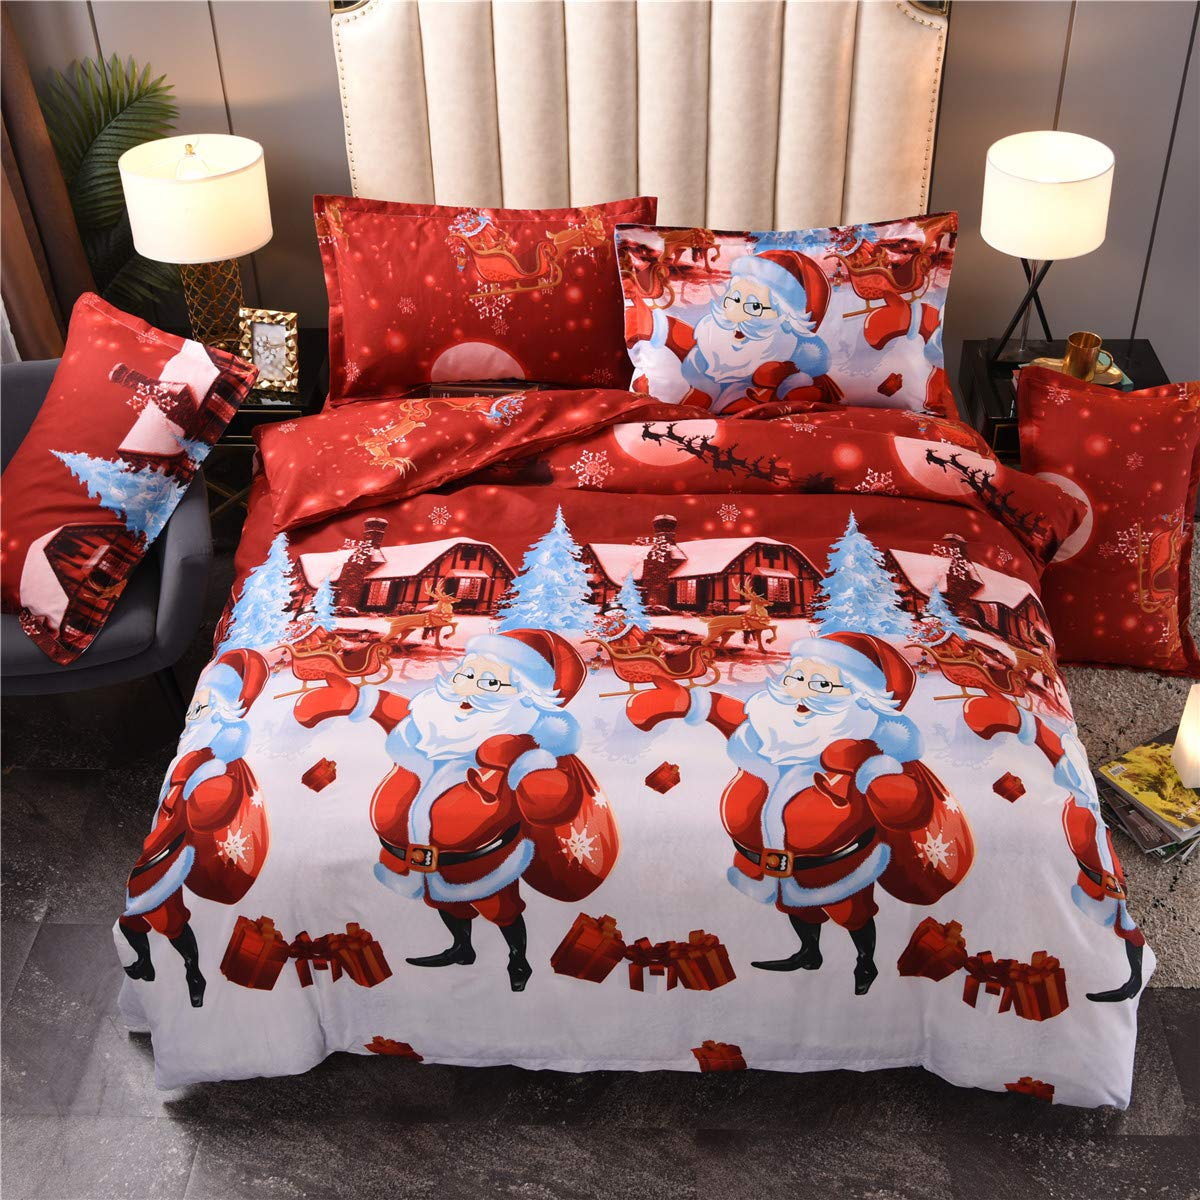 Red and Cream Comforter Cover with Zipper Ties, Soft Microfiber, 1 Duvet Cover and 1 Pillow Sham